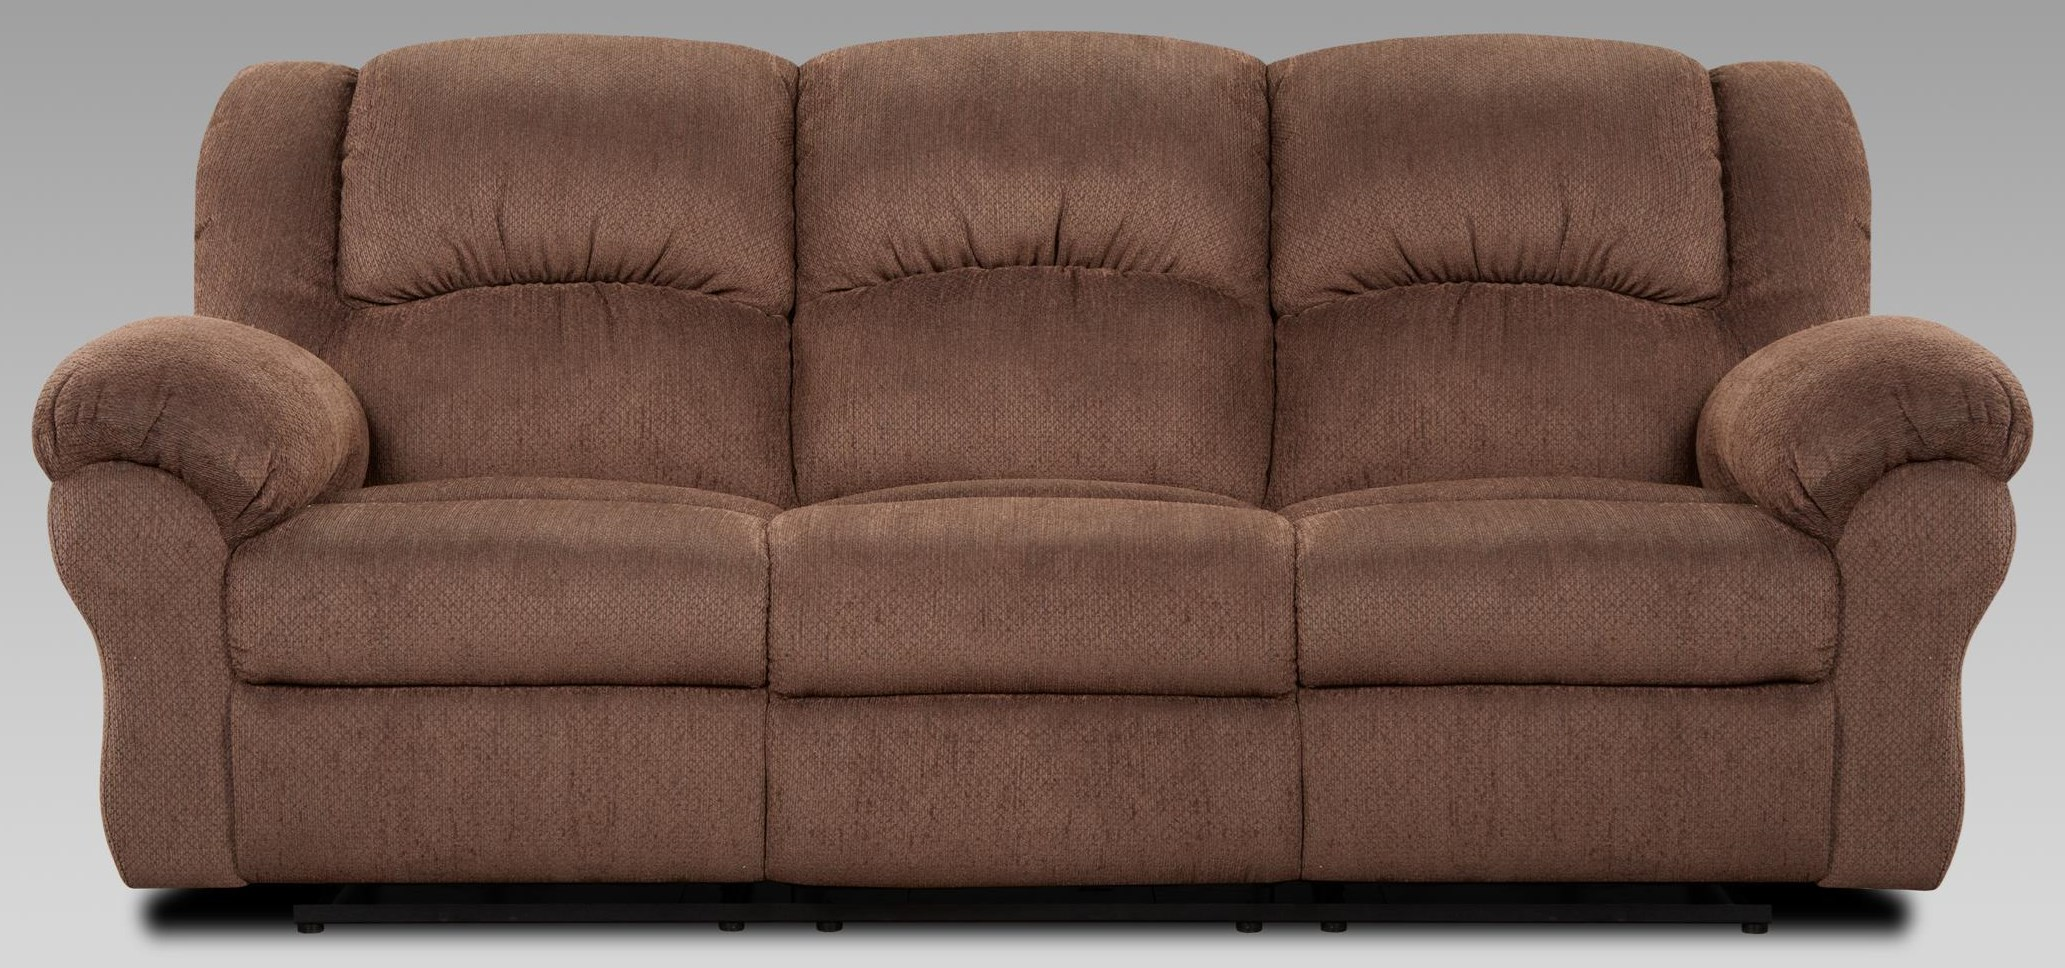 sectional sofas under 1000 00 red leather sofa with ottoman affordable furniture 7700 contemporary